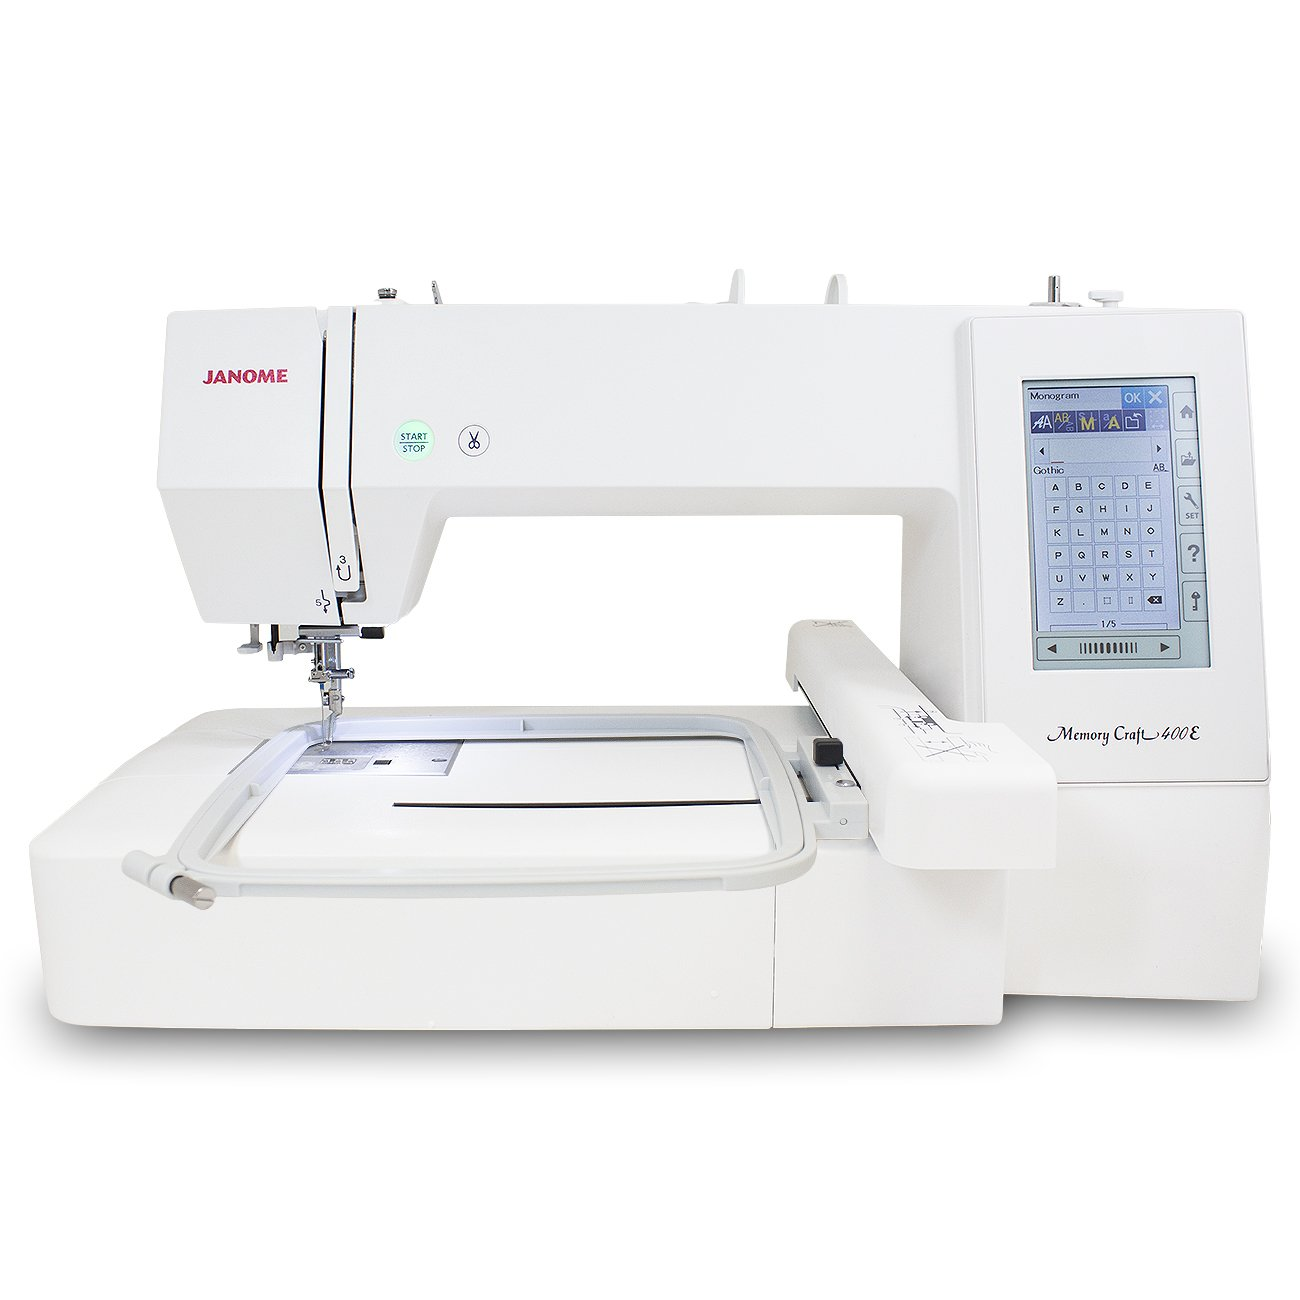 Janome Memory Craft 400E Embroidery Machine MC400E